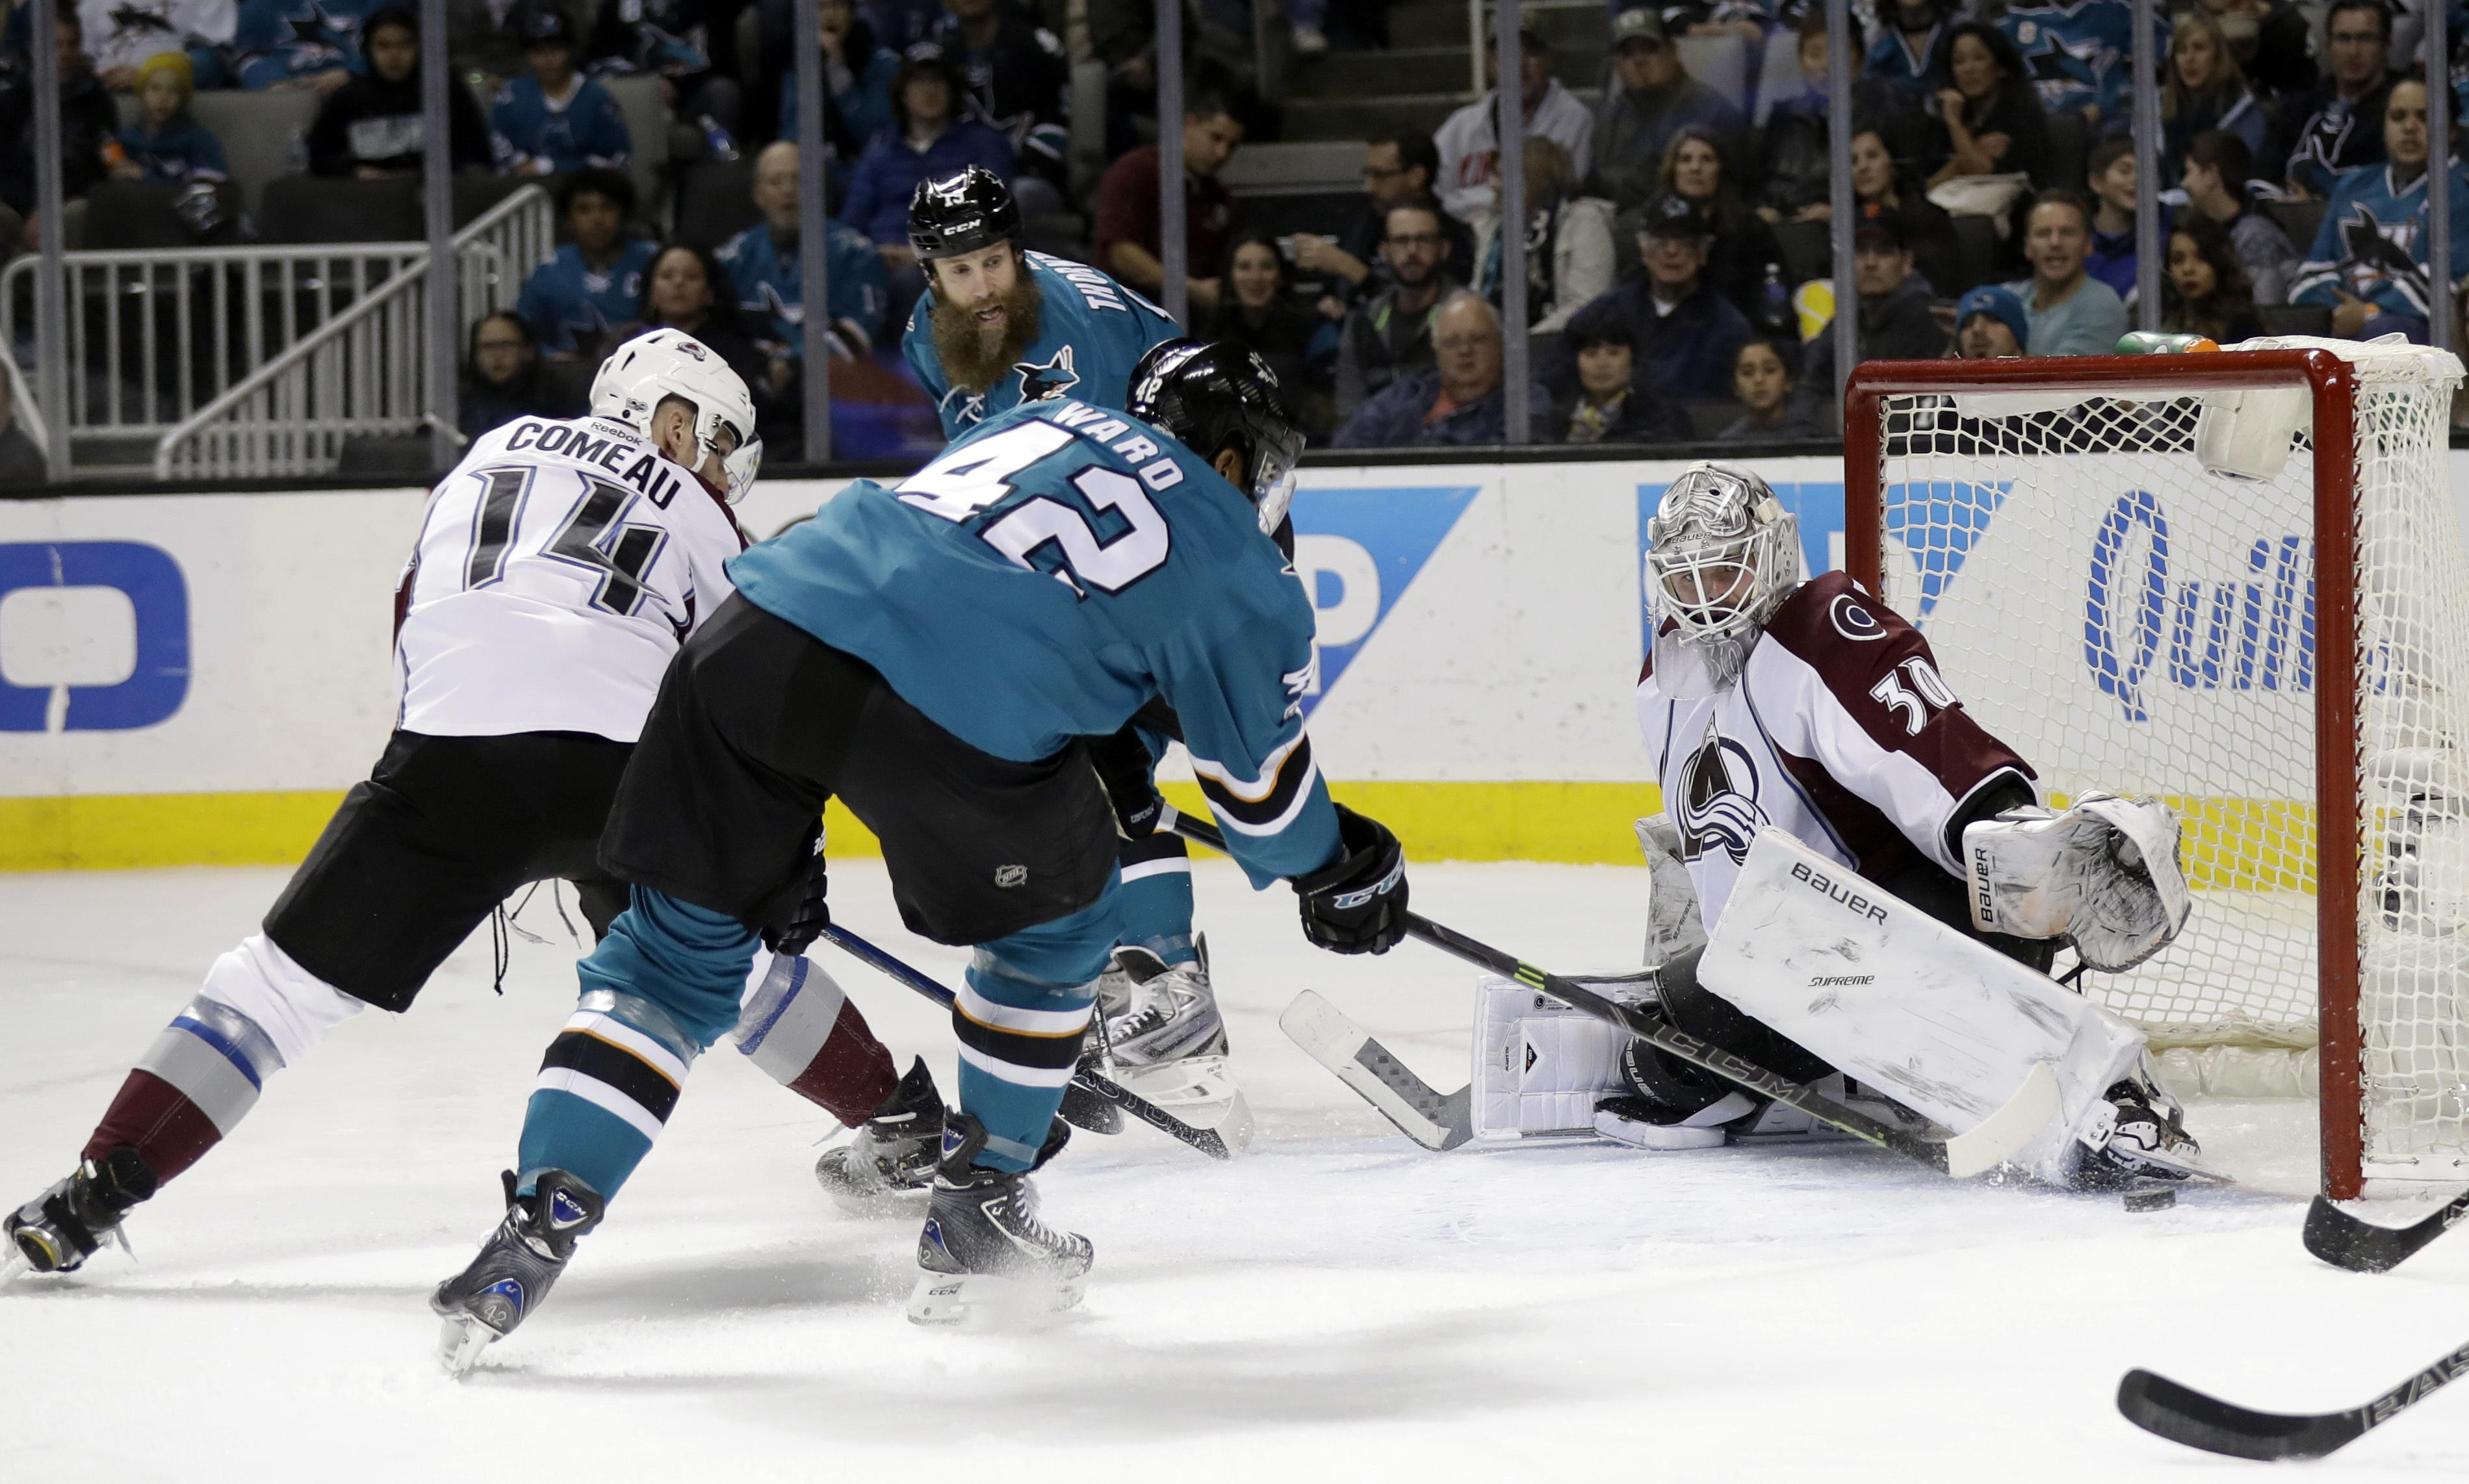 Avalanche_sharks_hockey_10701